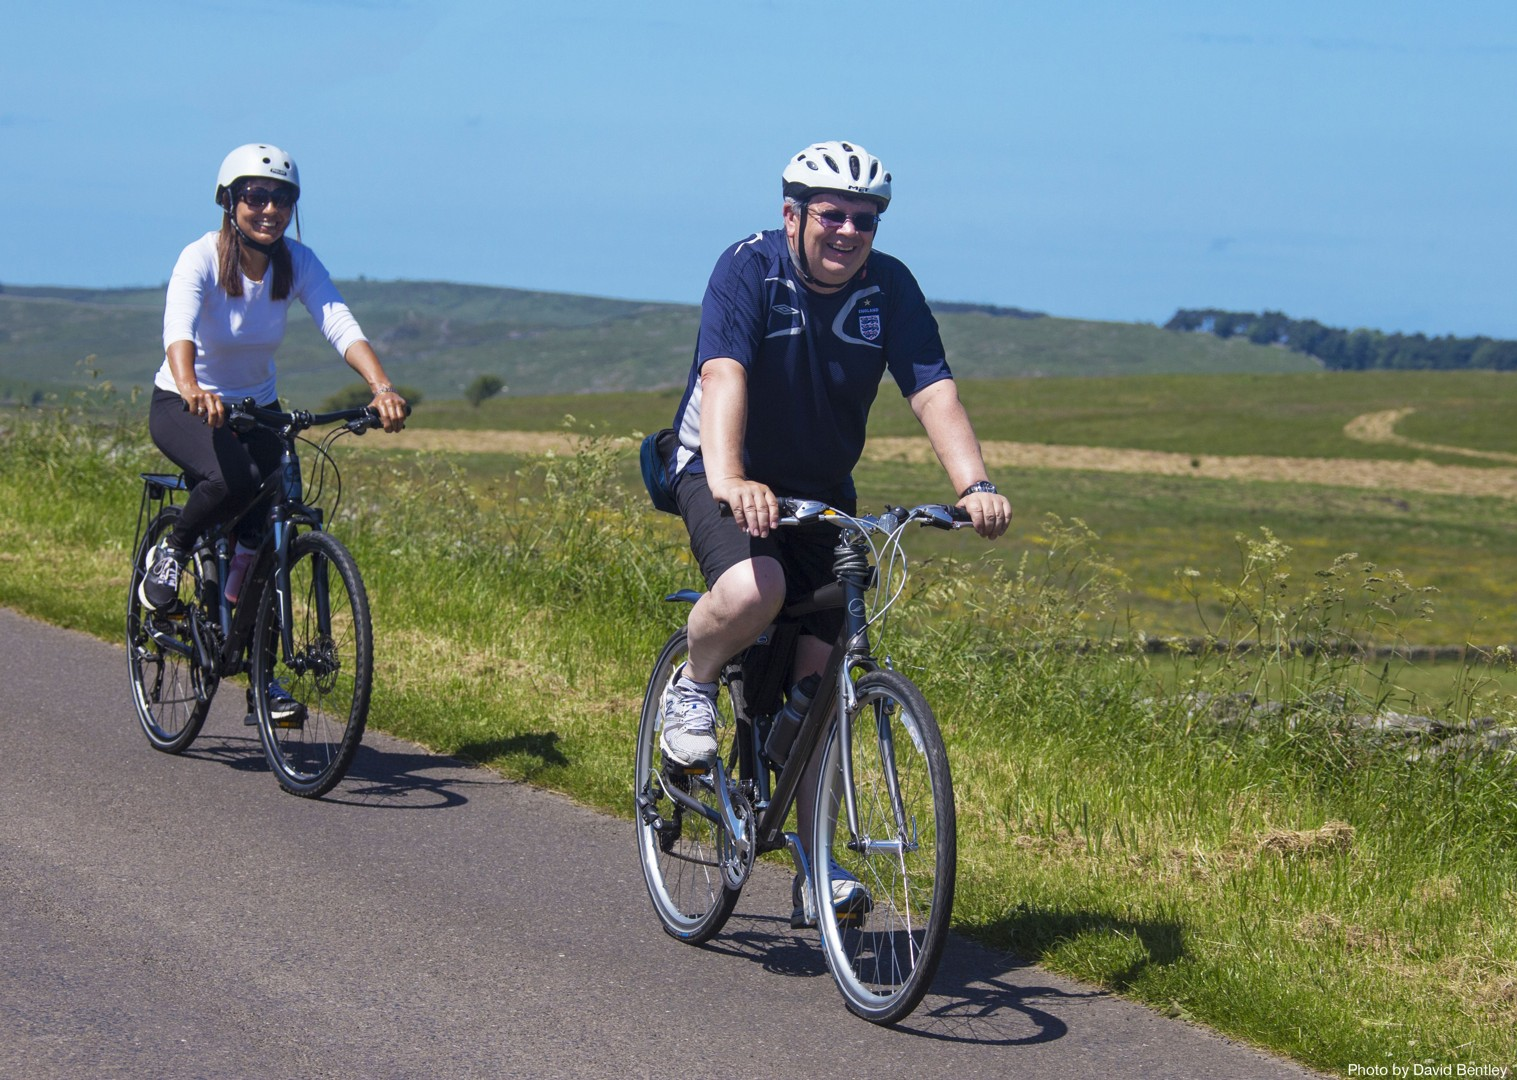 UK-Hadrians-Cycleway-Self-Guided-Leisure-Cycling-Holiday-riding.jpg - UK - Hadrian's Cycleway - 2 Days Cycling - Self-Guided Leisure Cycling Holiday - Leisure Cycling